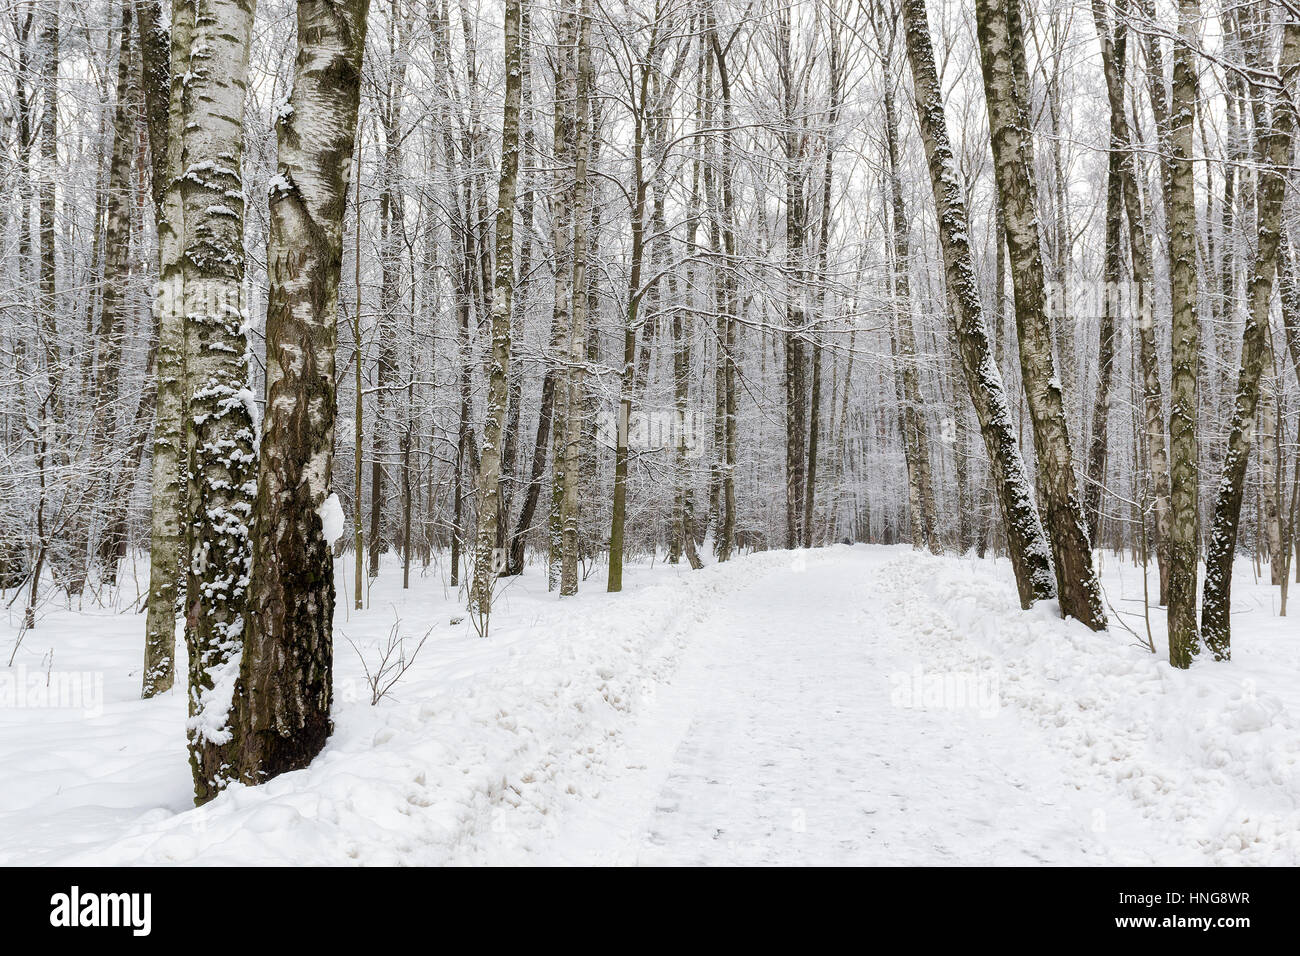 Snowy winter forest. Stock Photo